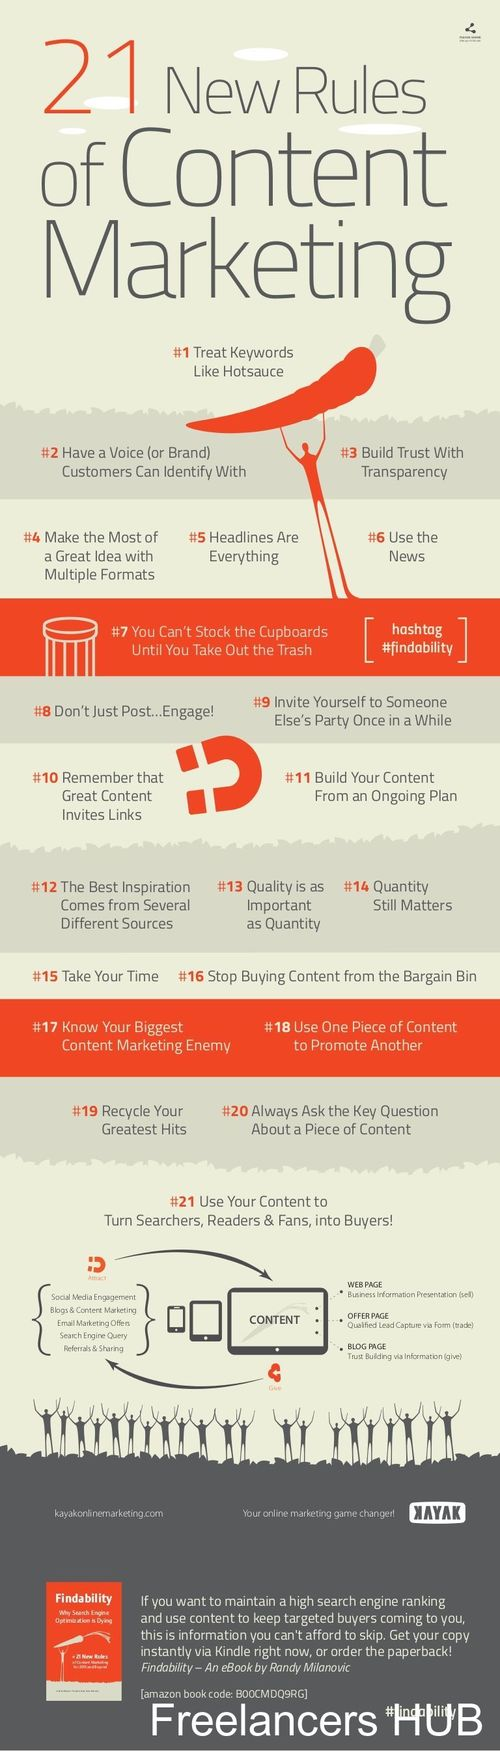 21 New Rules of #ContentMarketing Context is king and when it comes to your business website, the content needs to inform customers of the products and services you offer